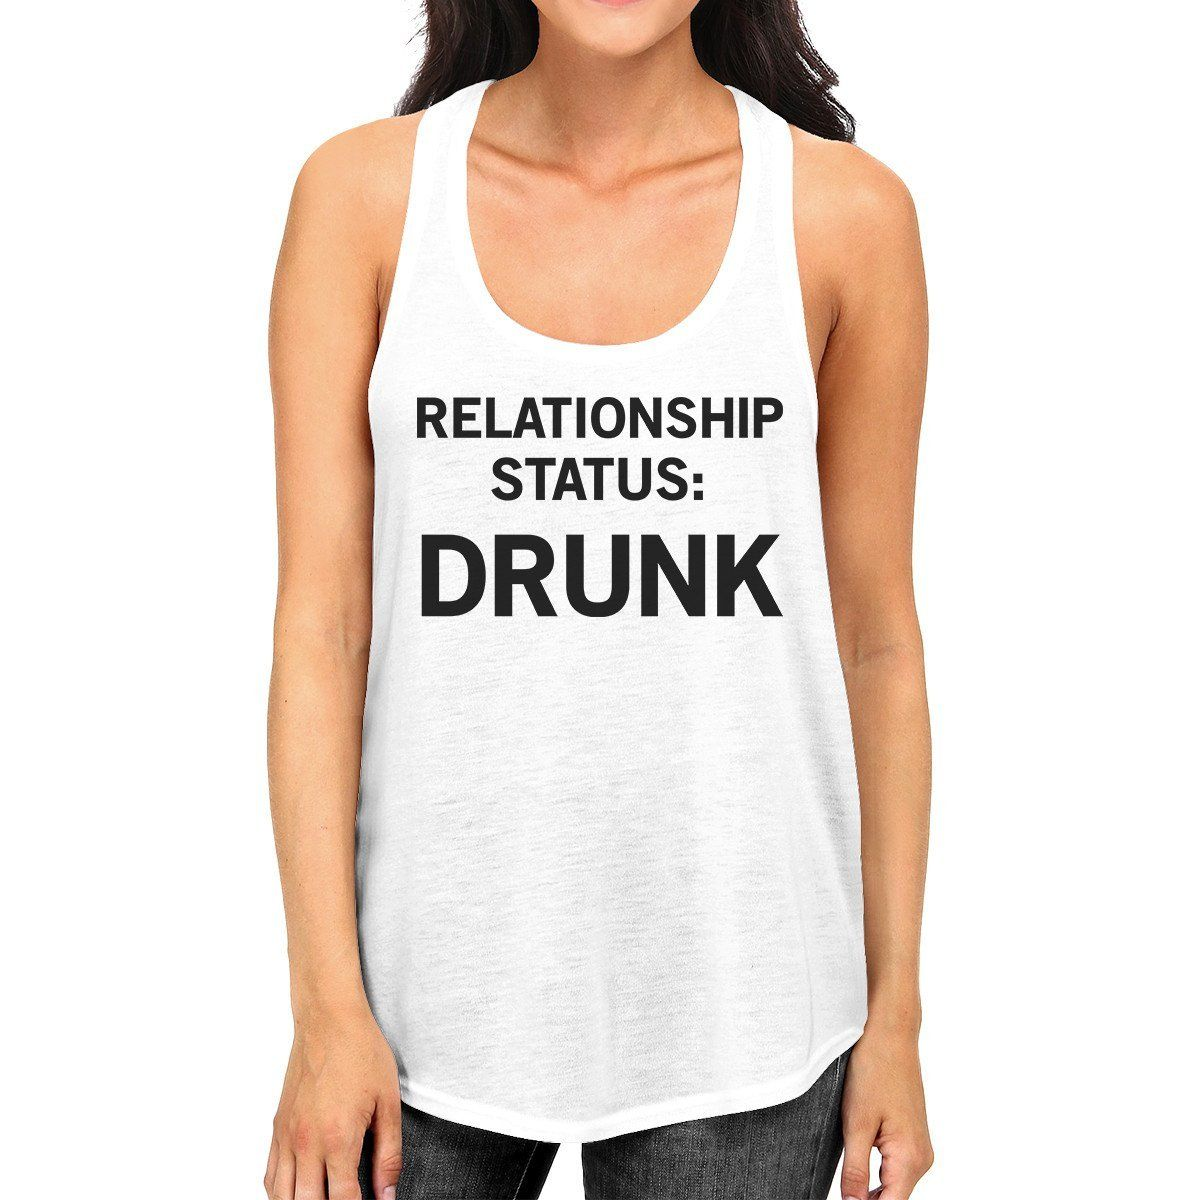 441f62d812 Relationship Status White Graphic Tank Top For Men Witty Gift Ideas Graphic Tank  Tops